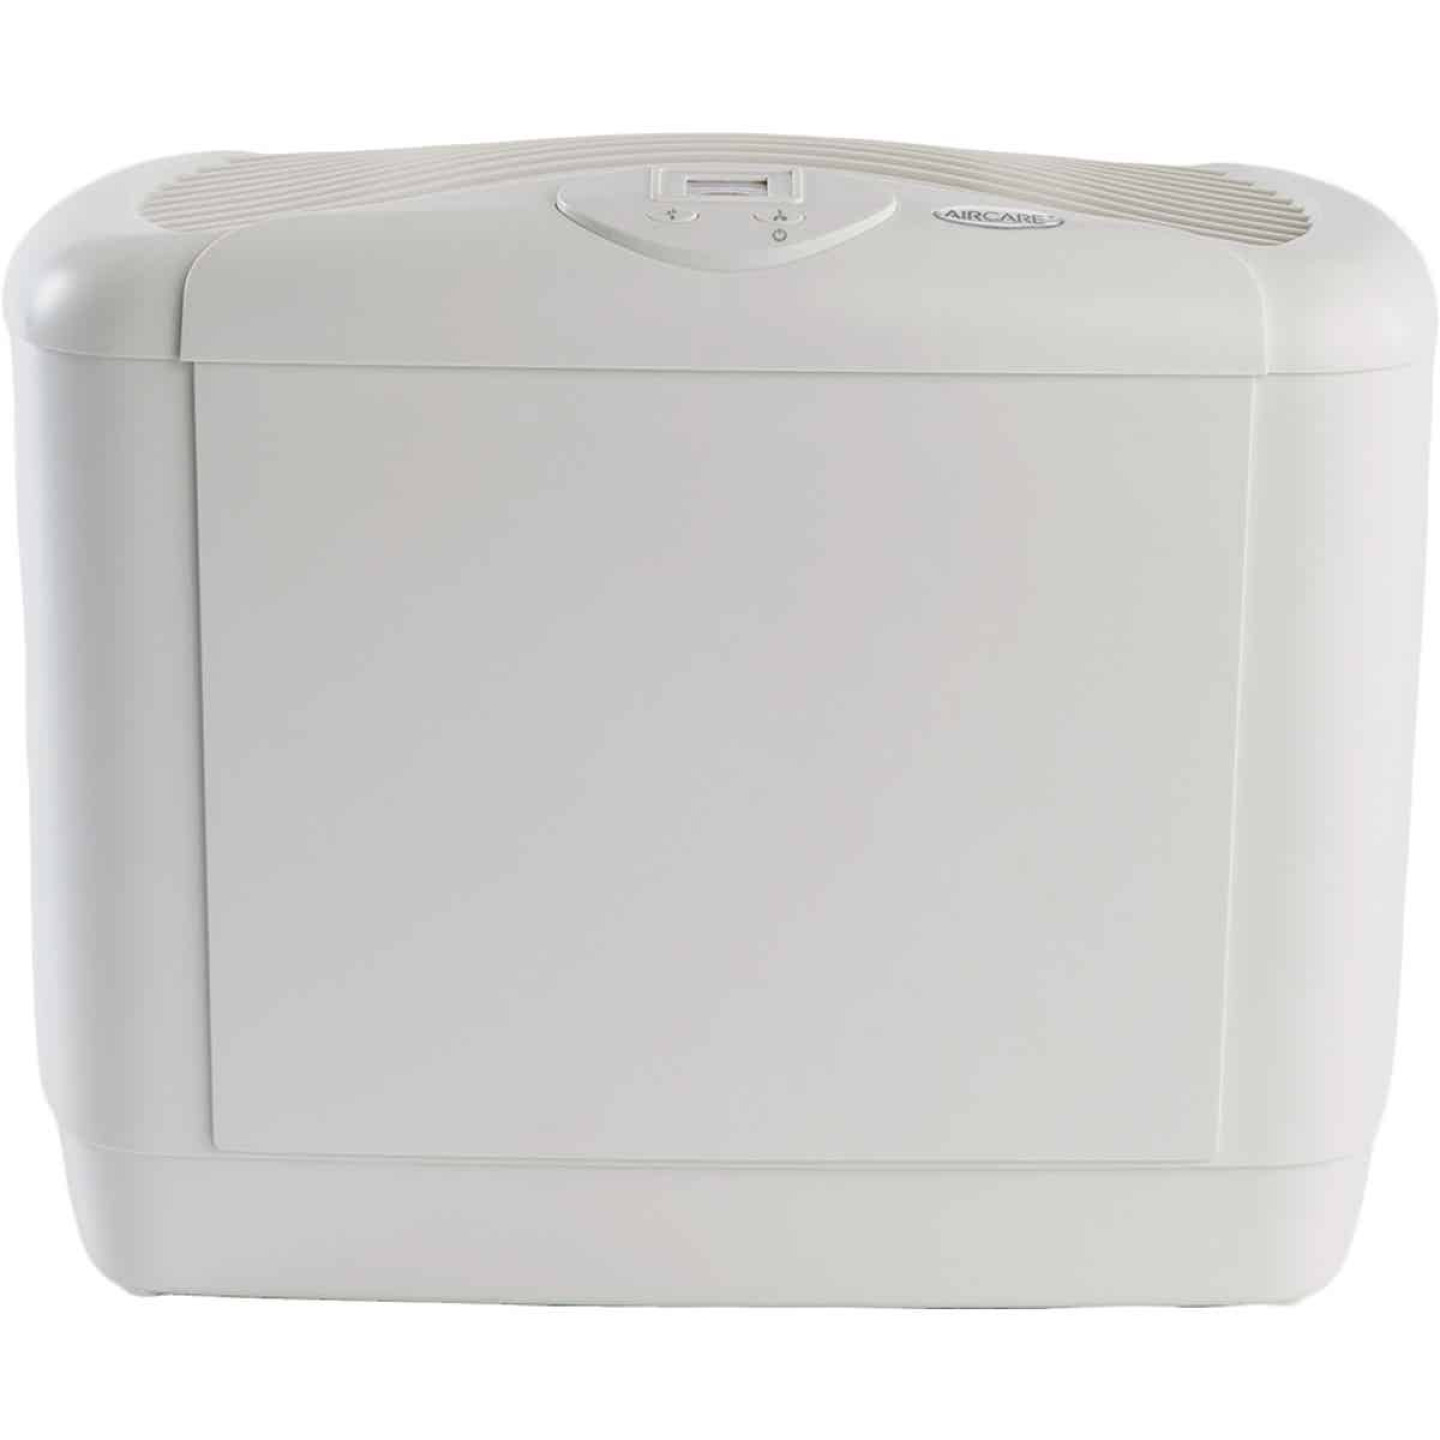 AirCare 3 Gal. Capacity 1250 Sq. Ft. Mini Console Evaporative Humidifier Image 1